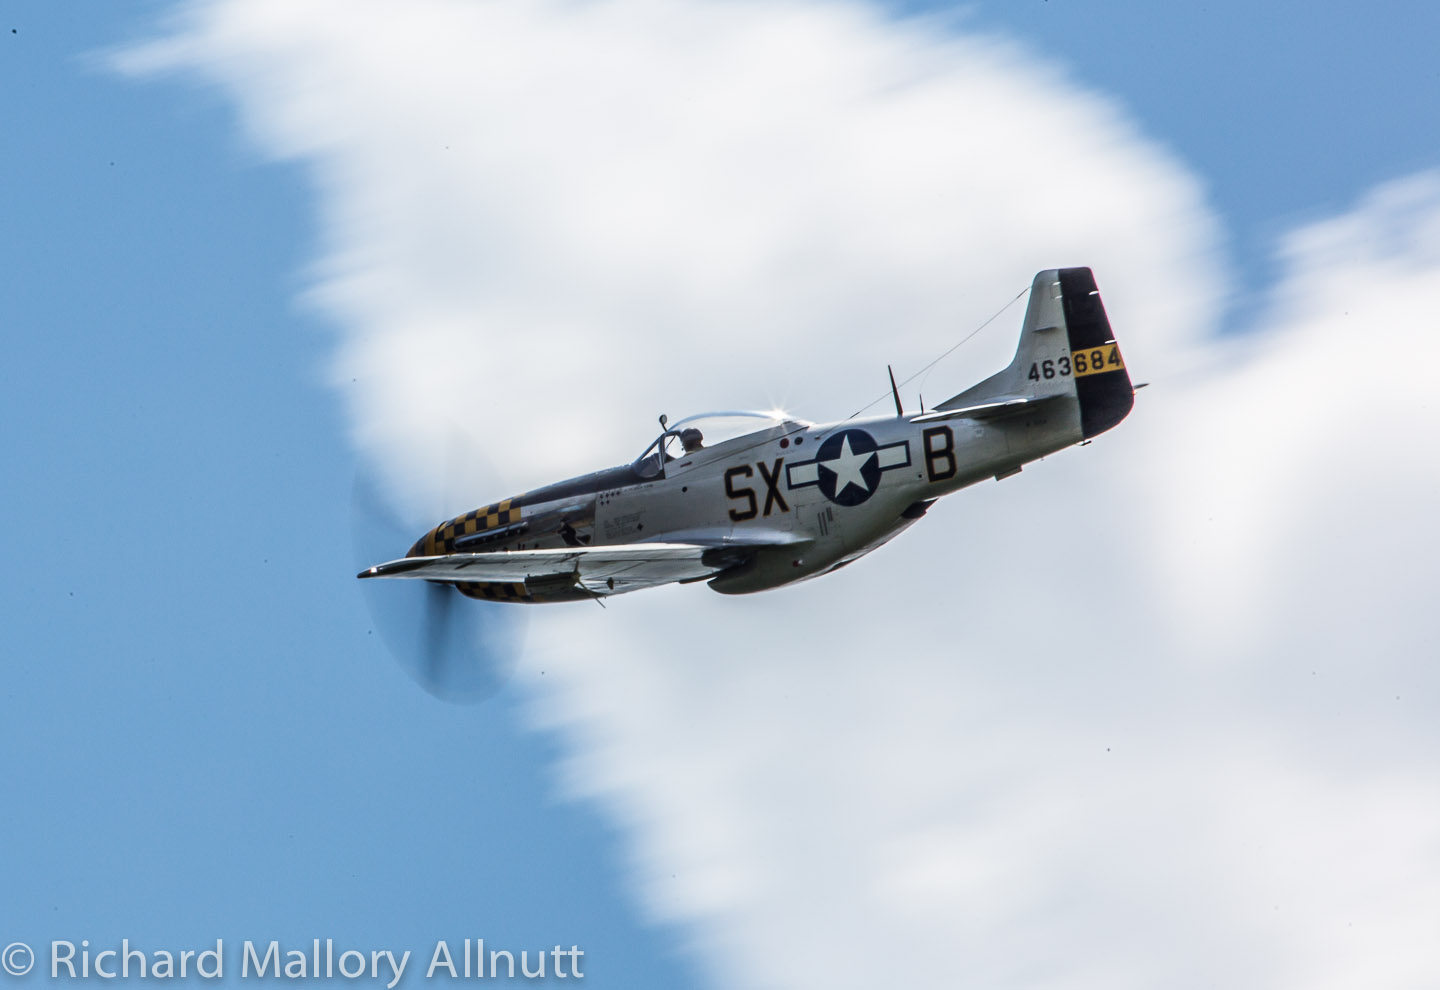 _C8A9985 - Richard Mallory Allnutt photo - Warbirds Over the Beach - Military Aviation Museum - Pungo, VA - May 17, 2014